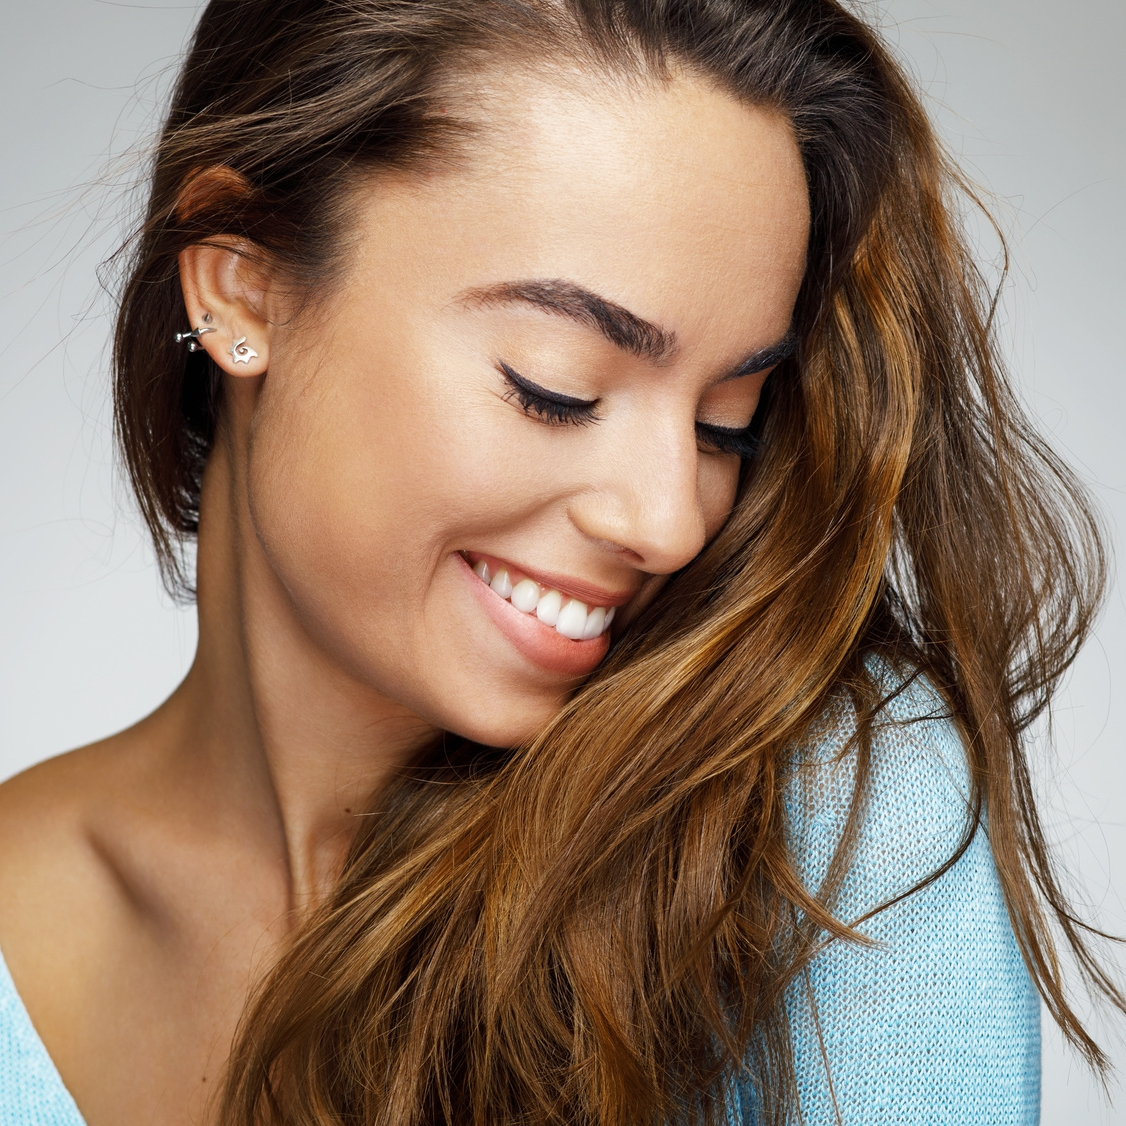 Young woman with white teeth smiling and looking down at her hair biddulph